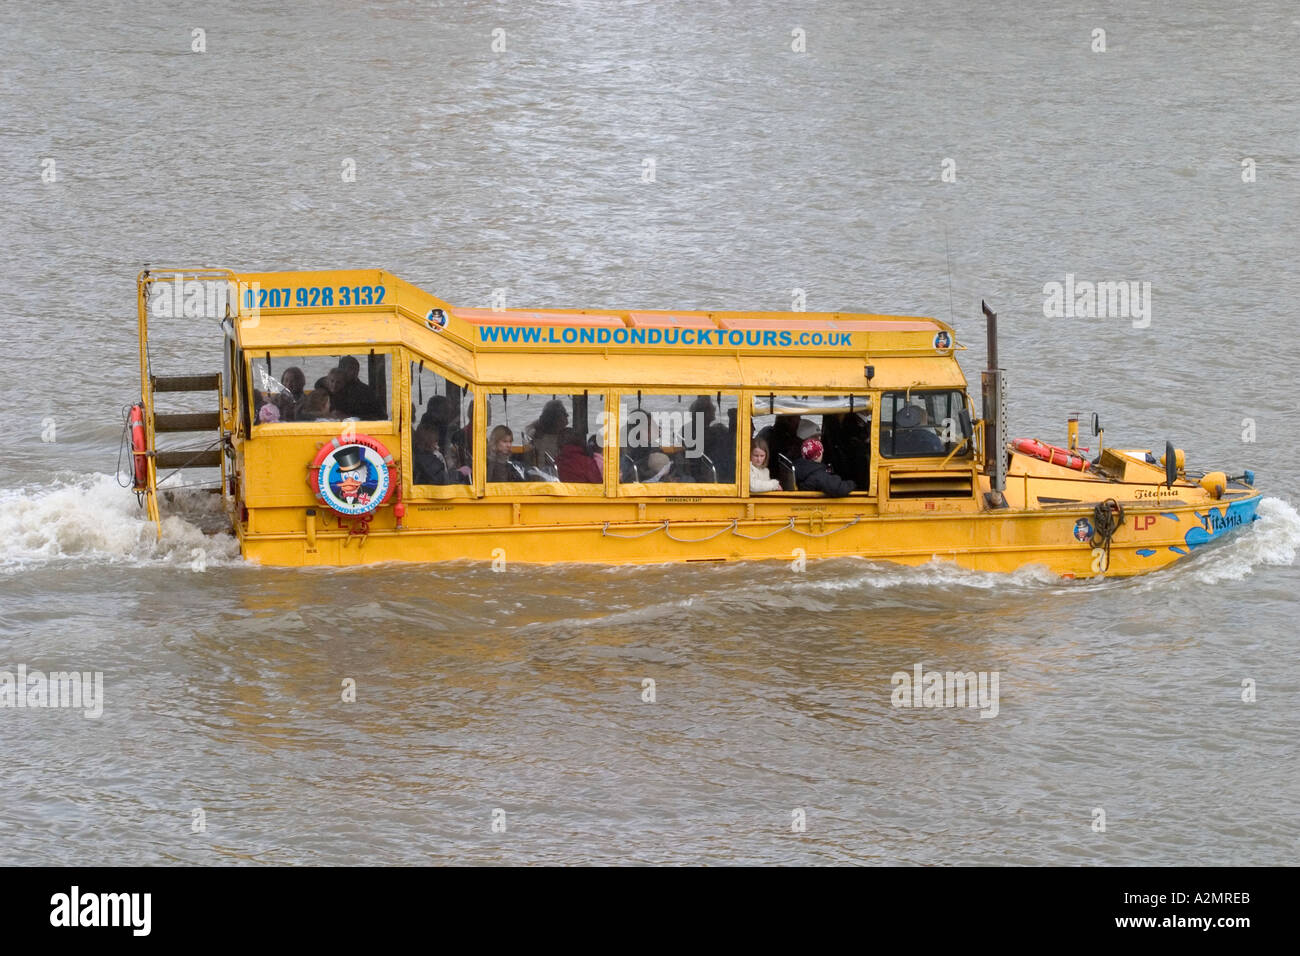 Amphibious craft river trip. The Thames, London, England - Stock Image